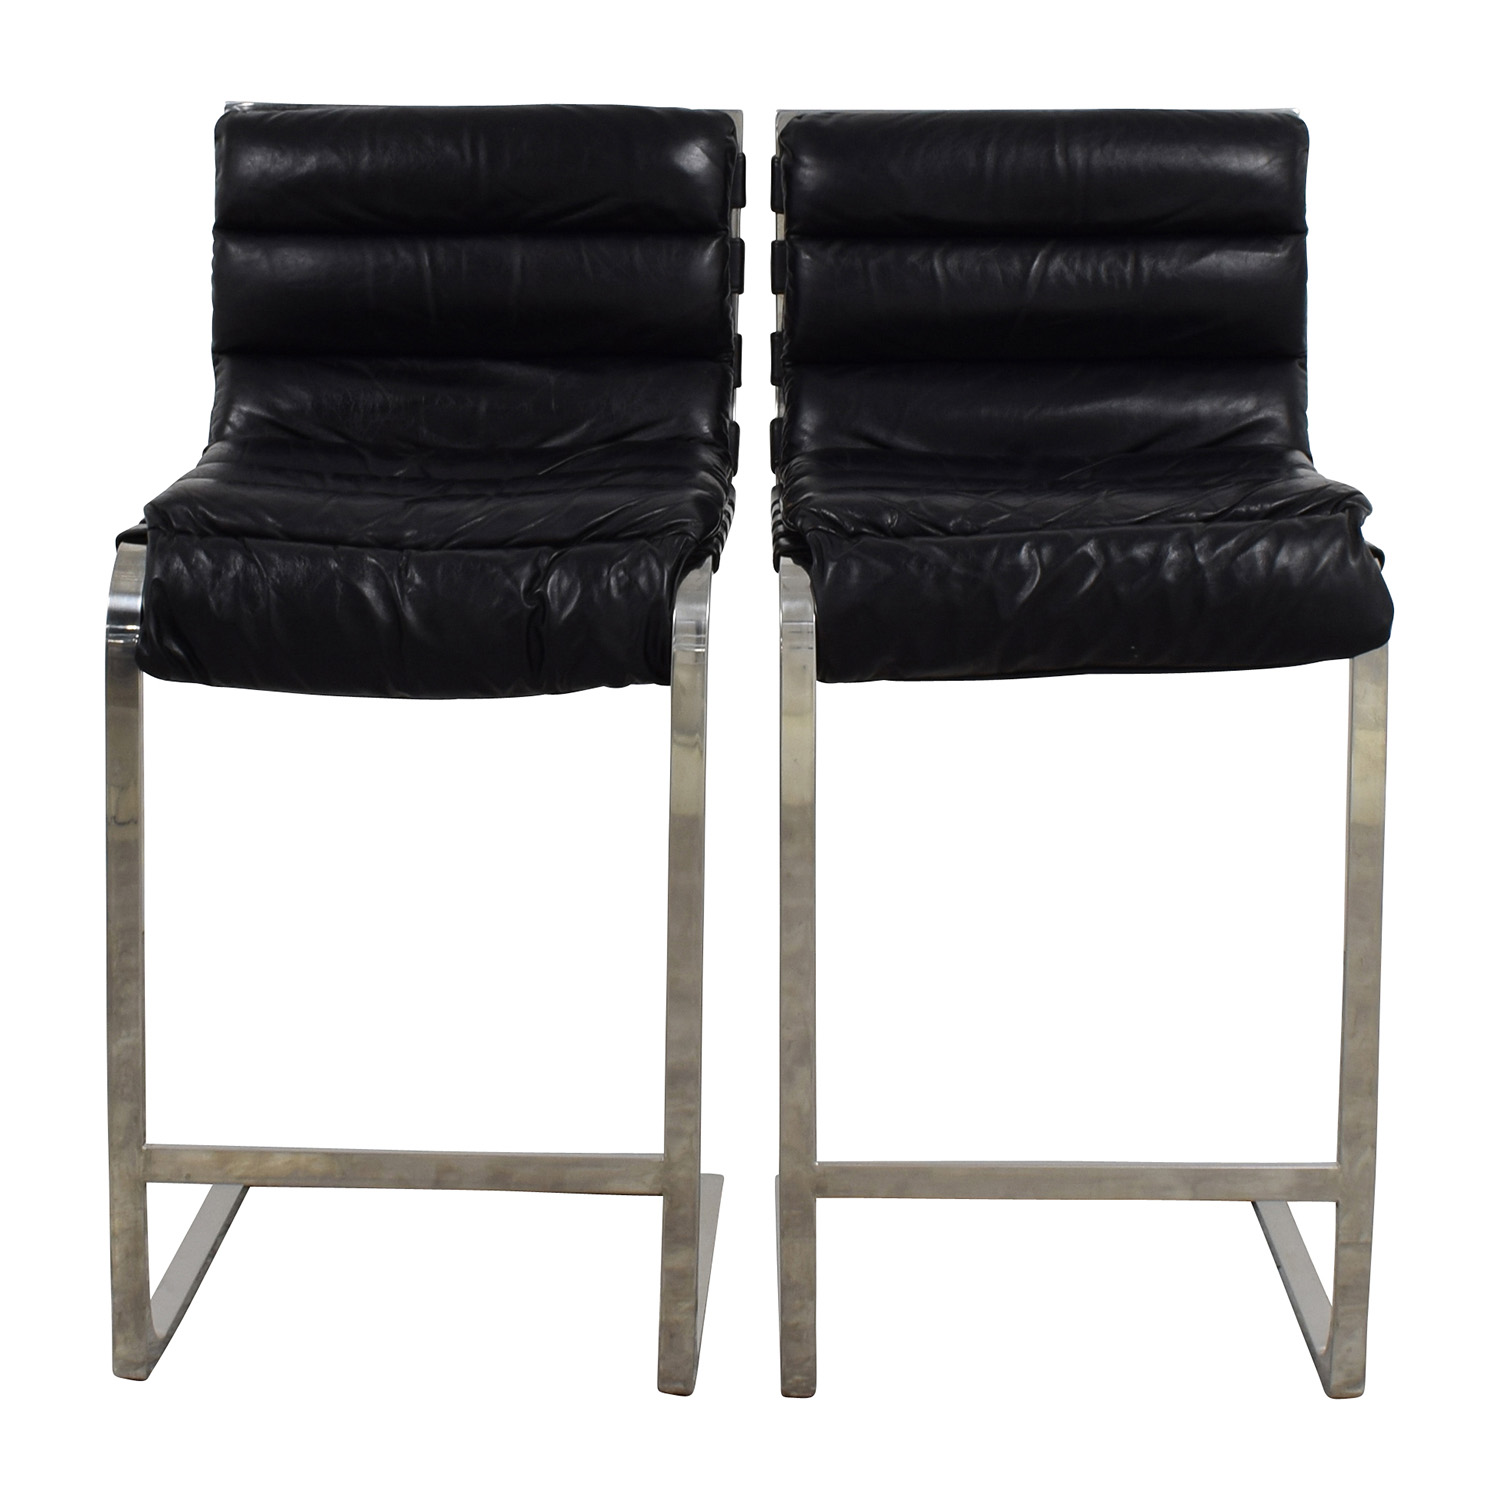 Stupendous 83 Off Restoration Hardware Restoration Hardware Oviedo Leather Counter Stool Chairs Creativecarmelina Interior Chair Design Creativecarmelinacom